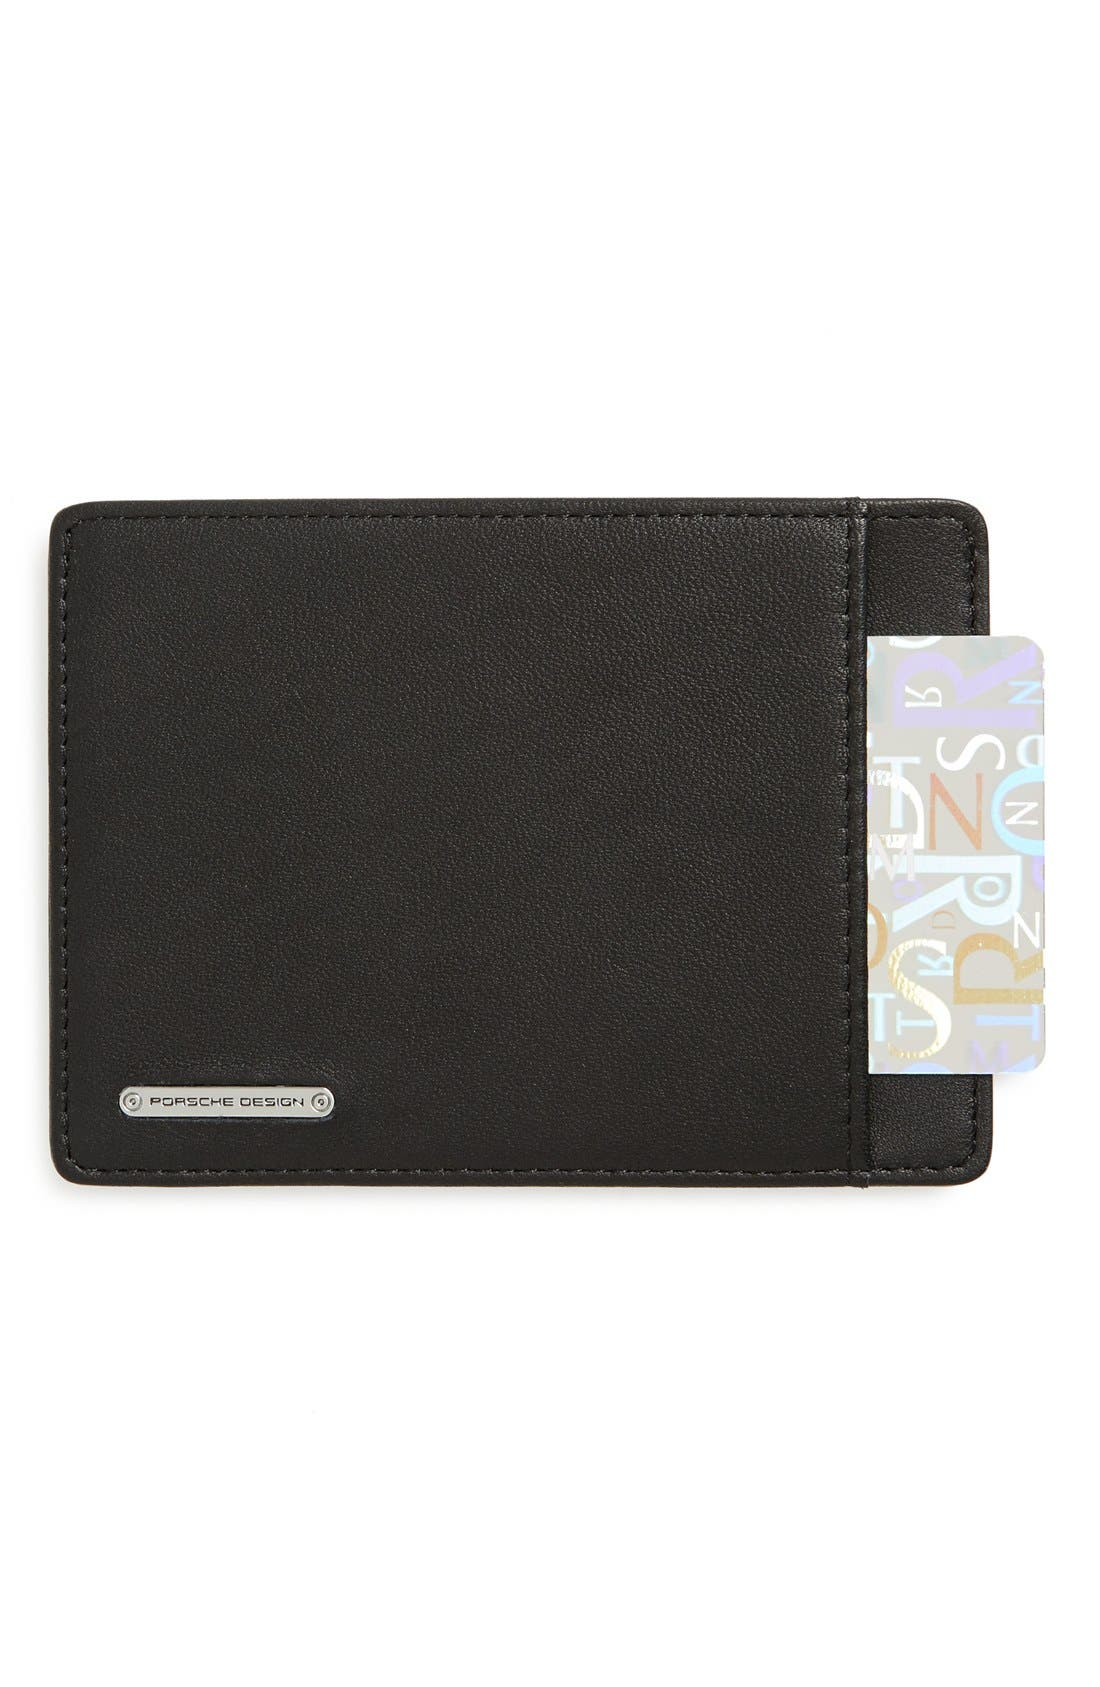 'CL2 2.0' Leather Card Holder,                             Main thumbnail 1, color,                             001